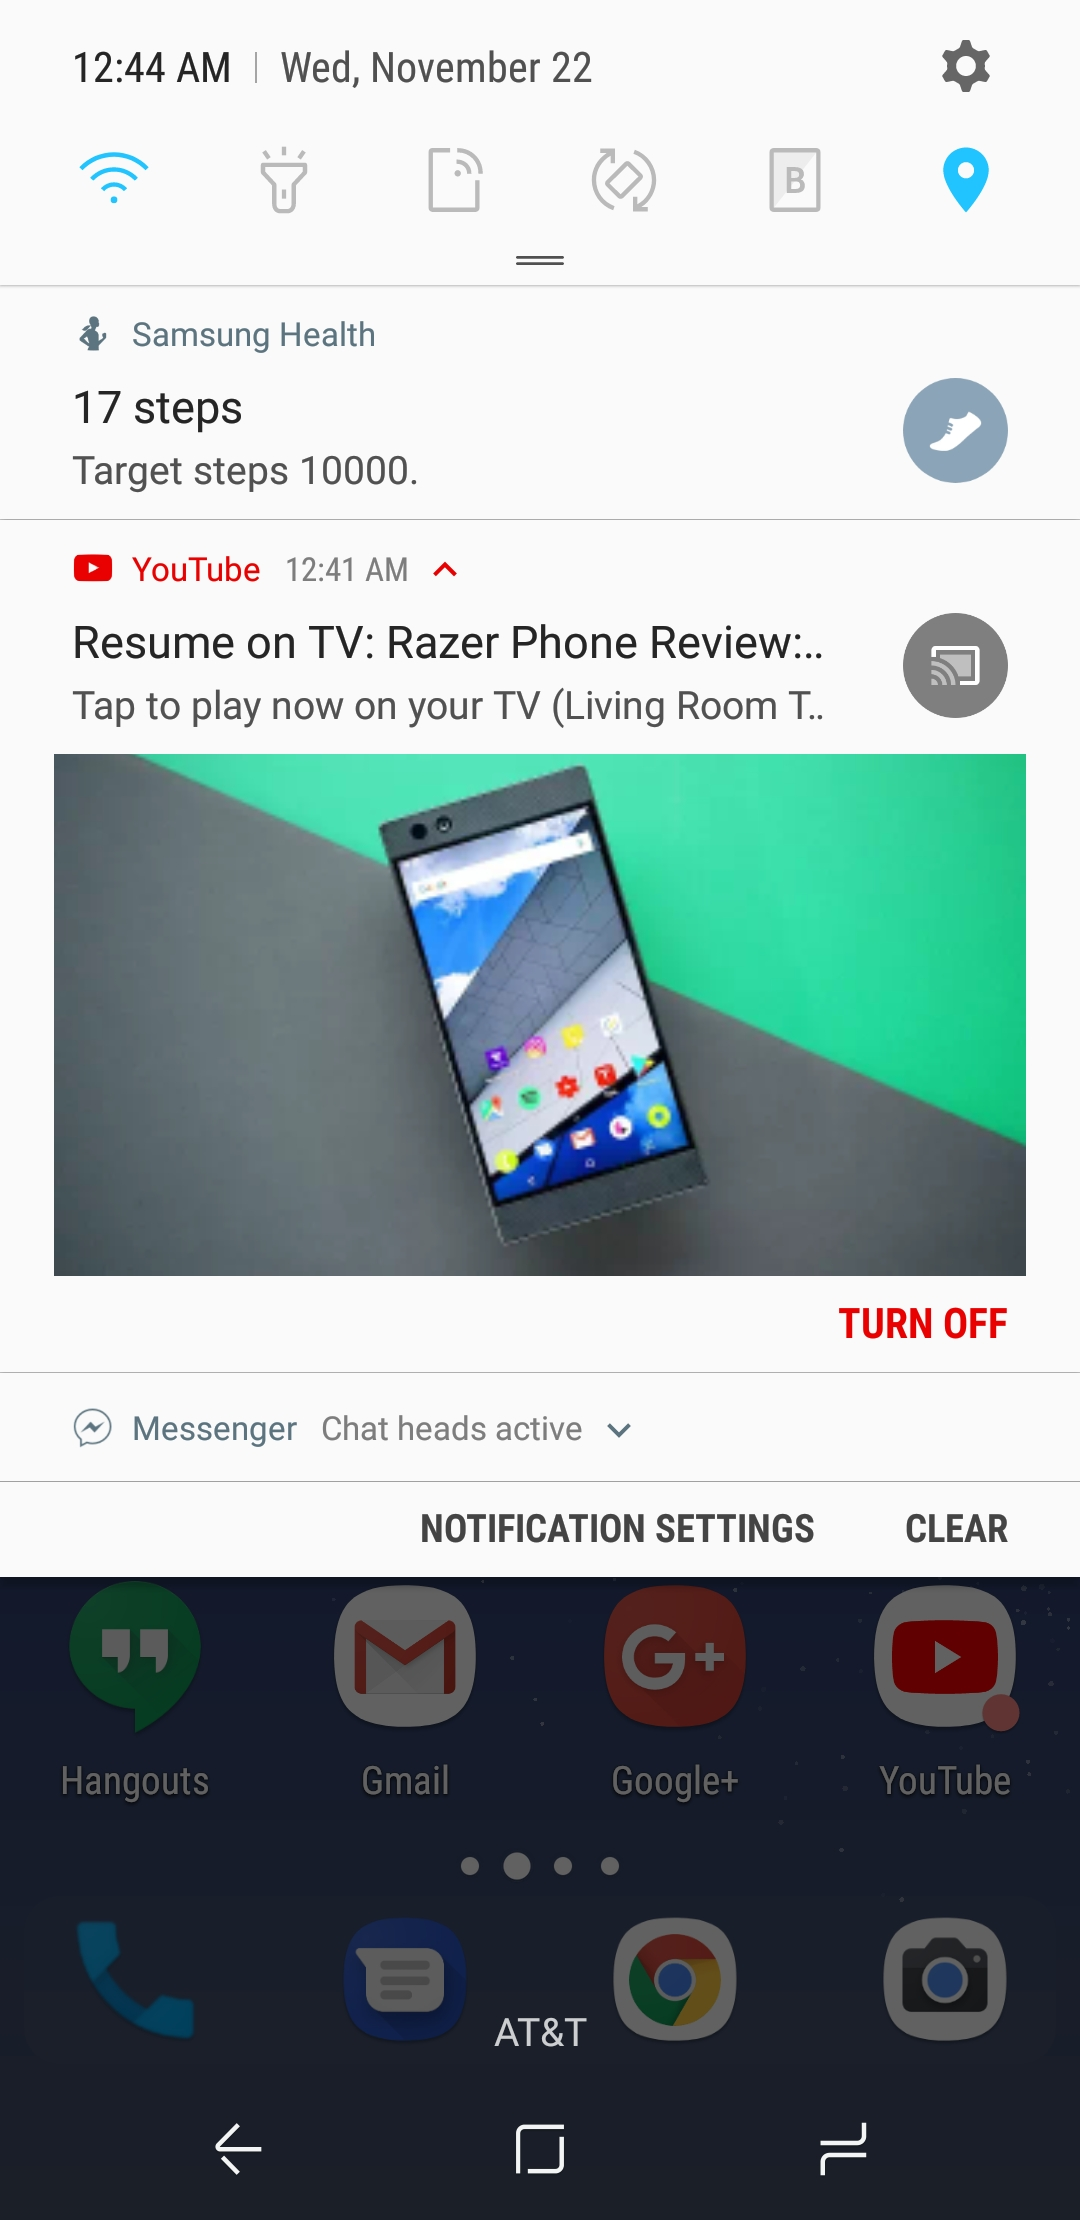 Youtube Resume   Youtube Notification Offers To Resume A Paused Video On  Your